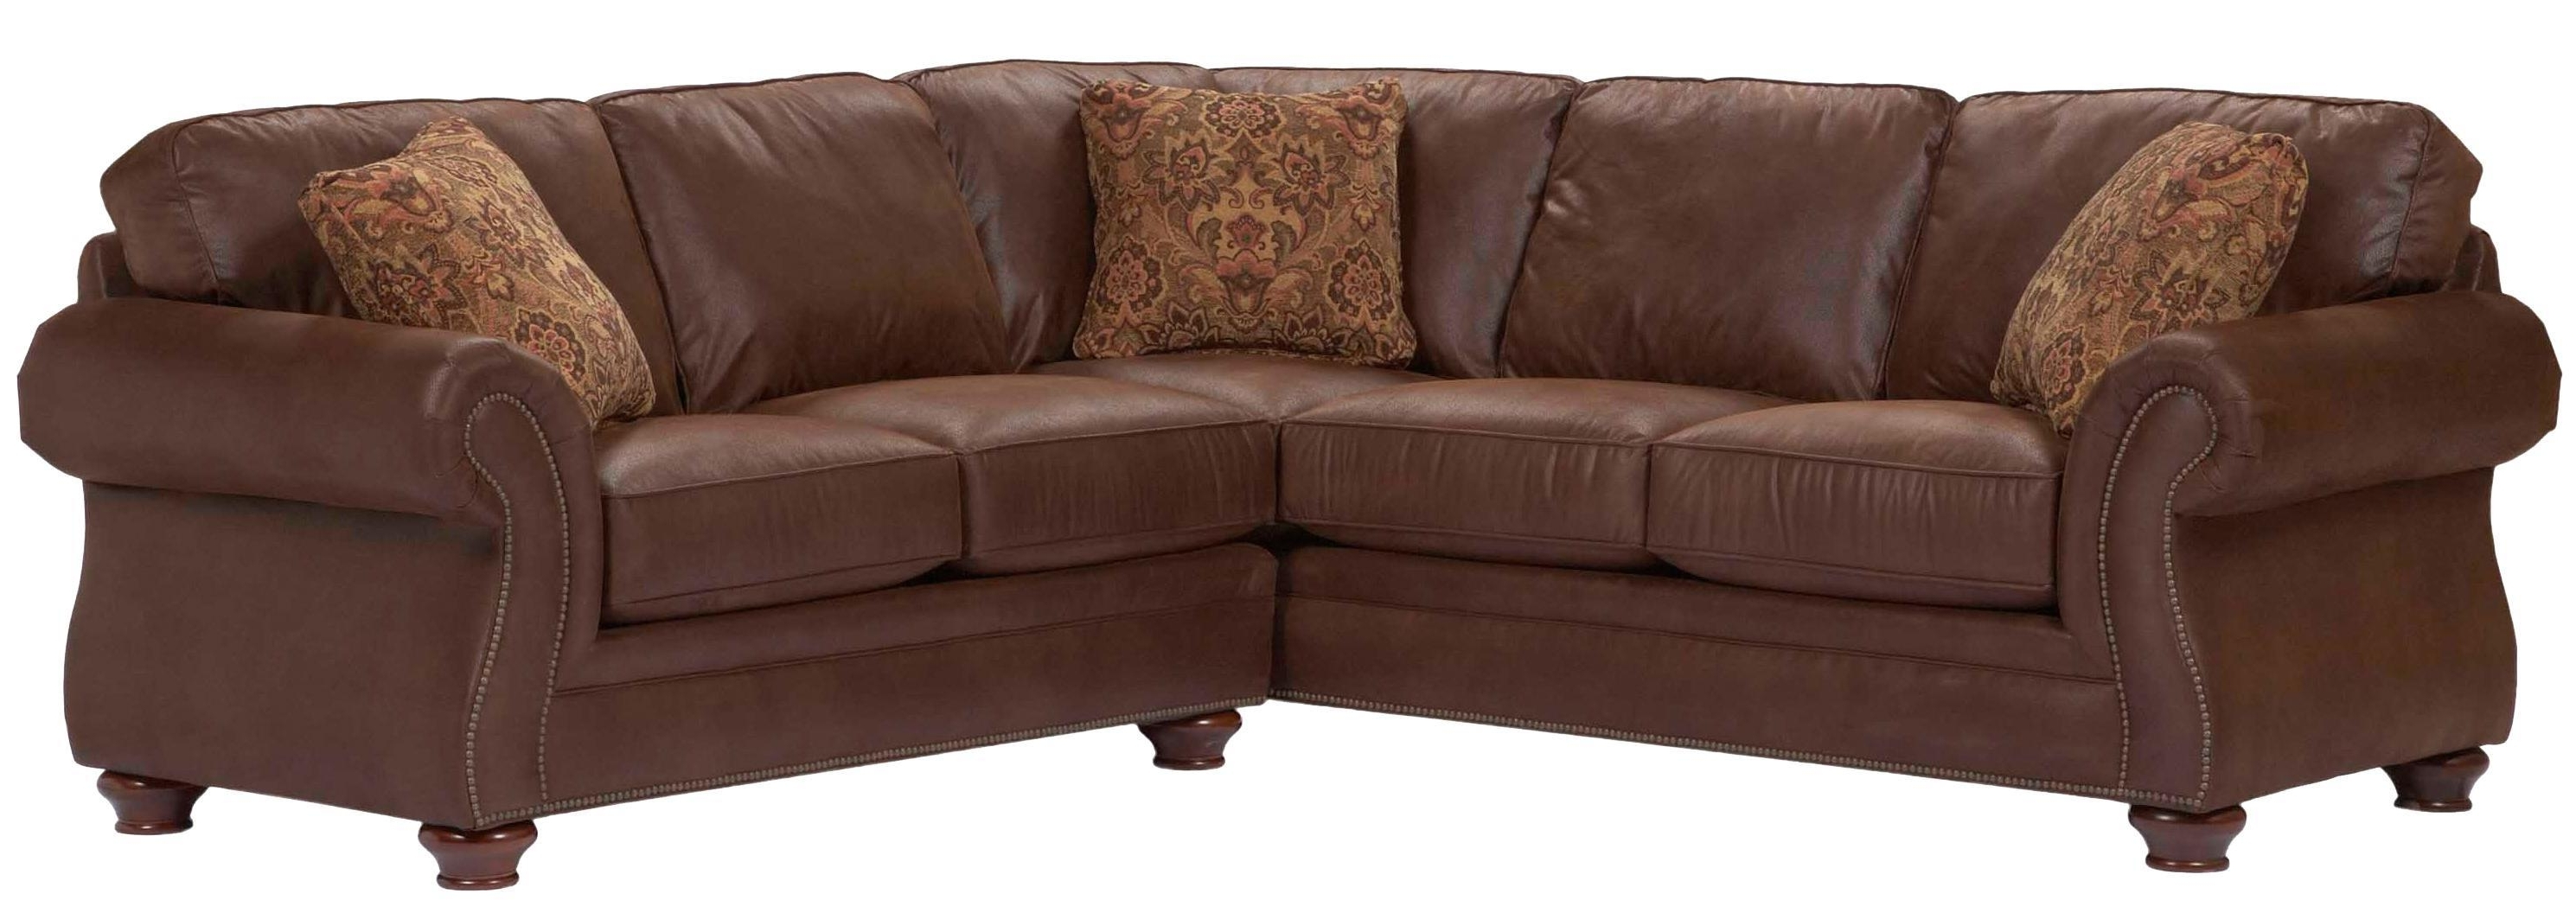 Well Liked El Paso Texas Sectional Sofas Throughout Broyhill Furniture Laramie 2 Piece Corner Sectional Sofa – Ahfa (View 9 of 20)